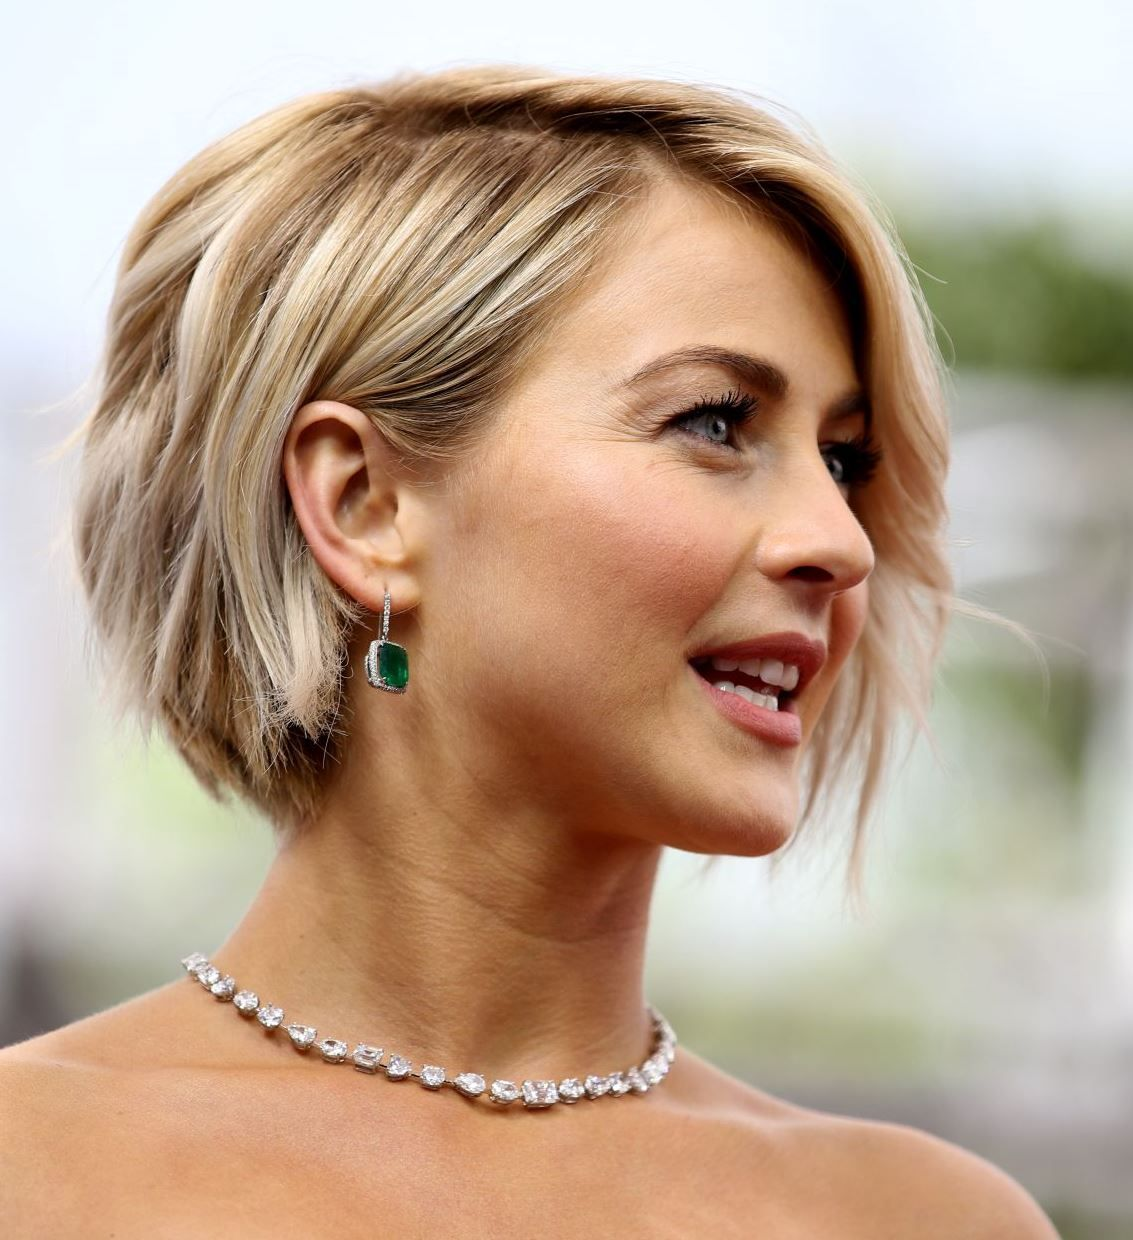 30 best short bob hair | bob hairstyles 2015 - short hairstyles